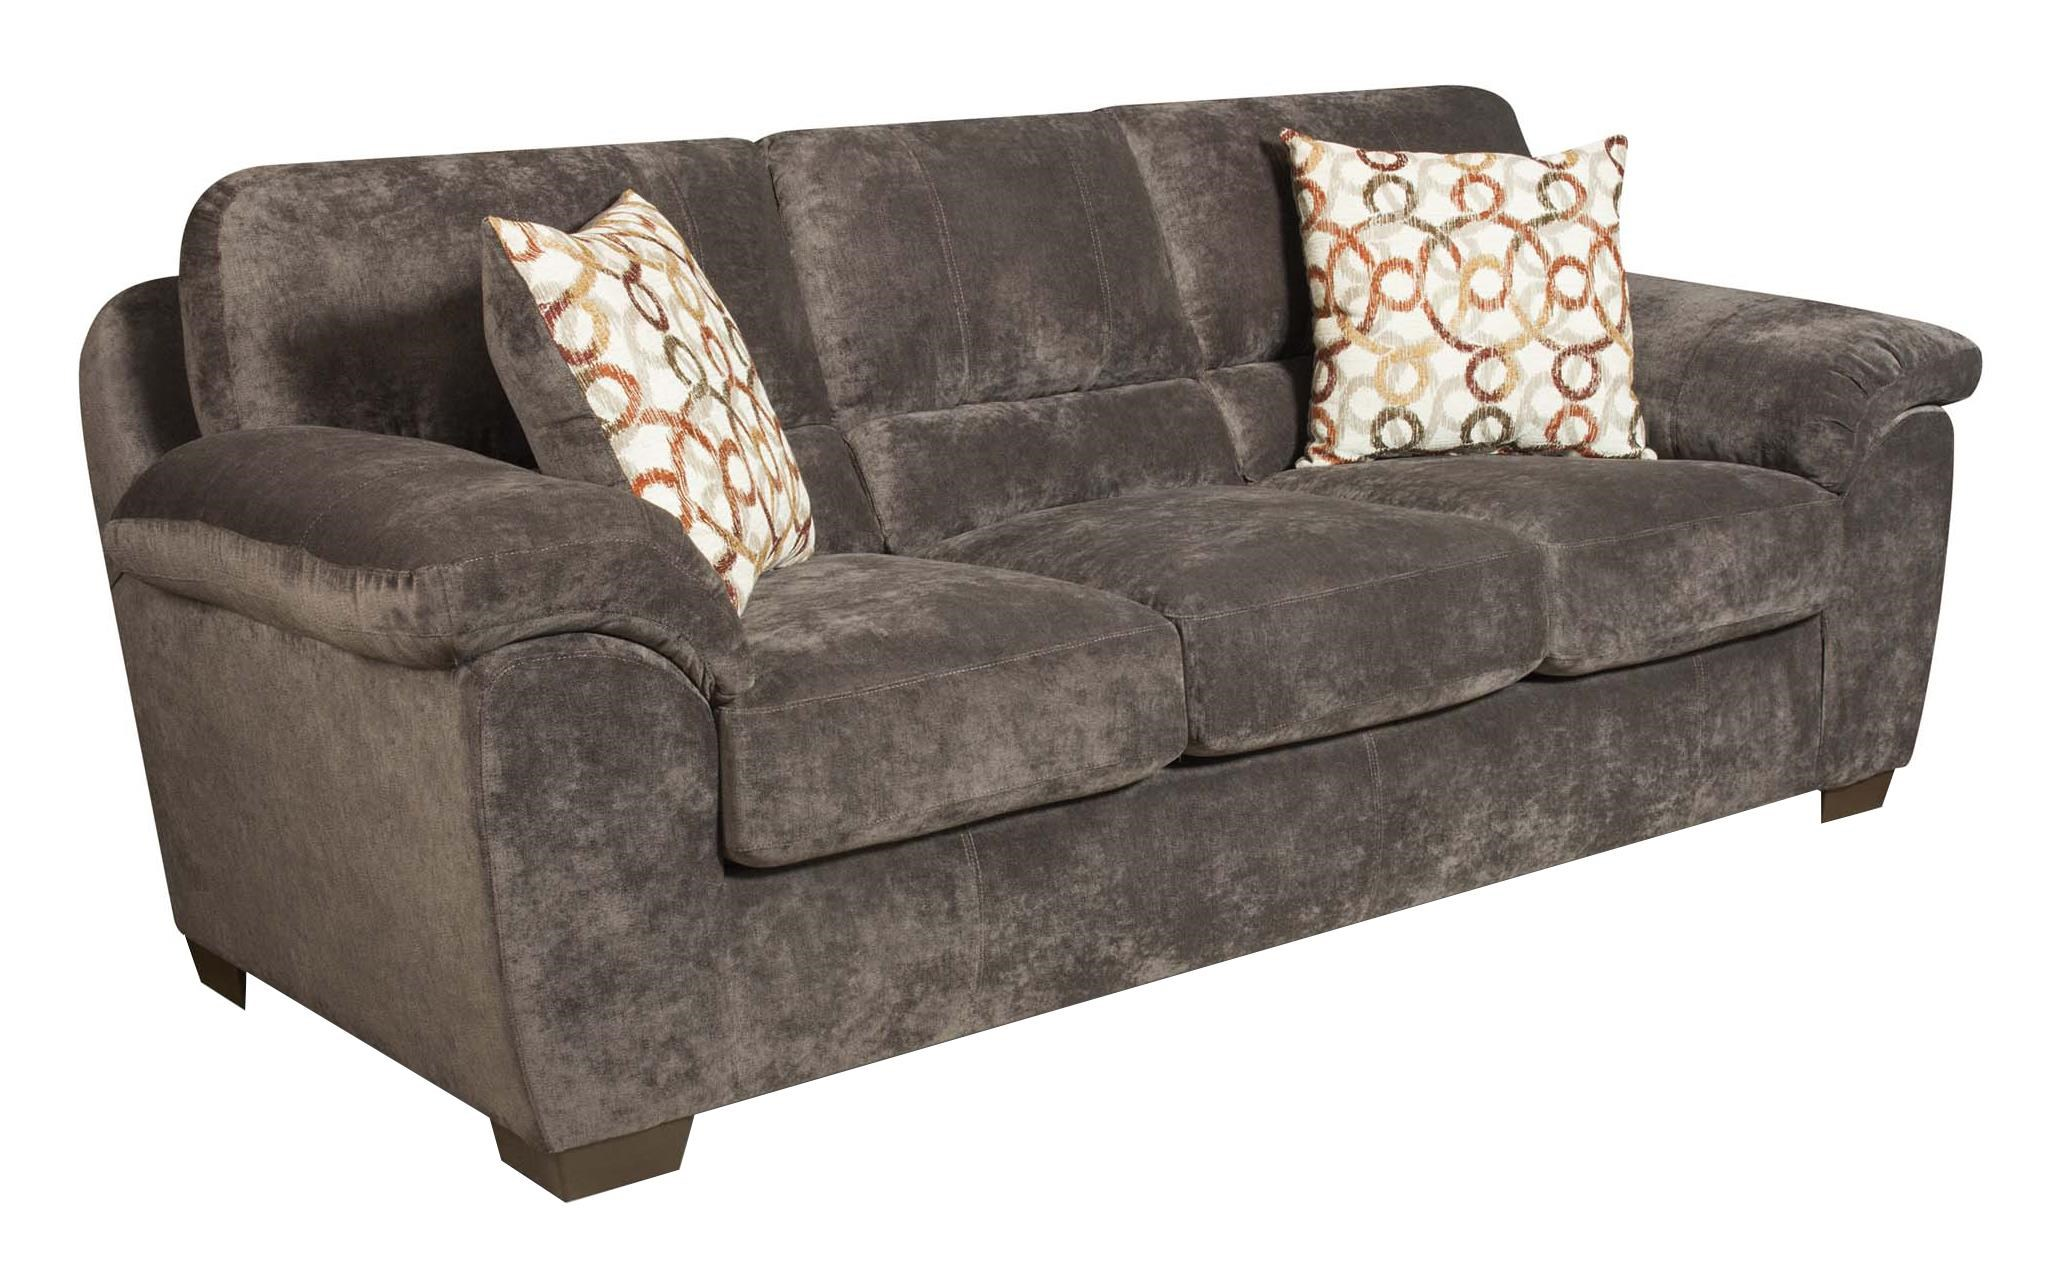 American Sofa Images 5450 Casual Sofa By American Furniture At Van Hill Furniture